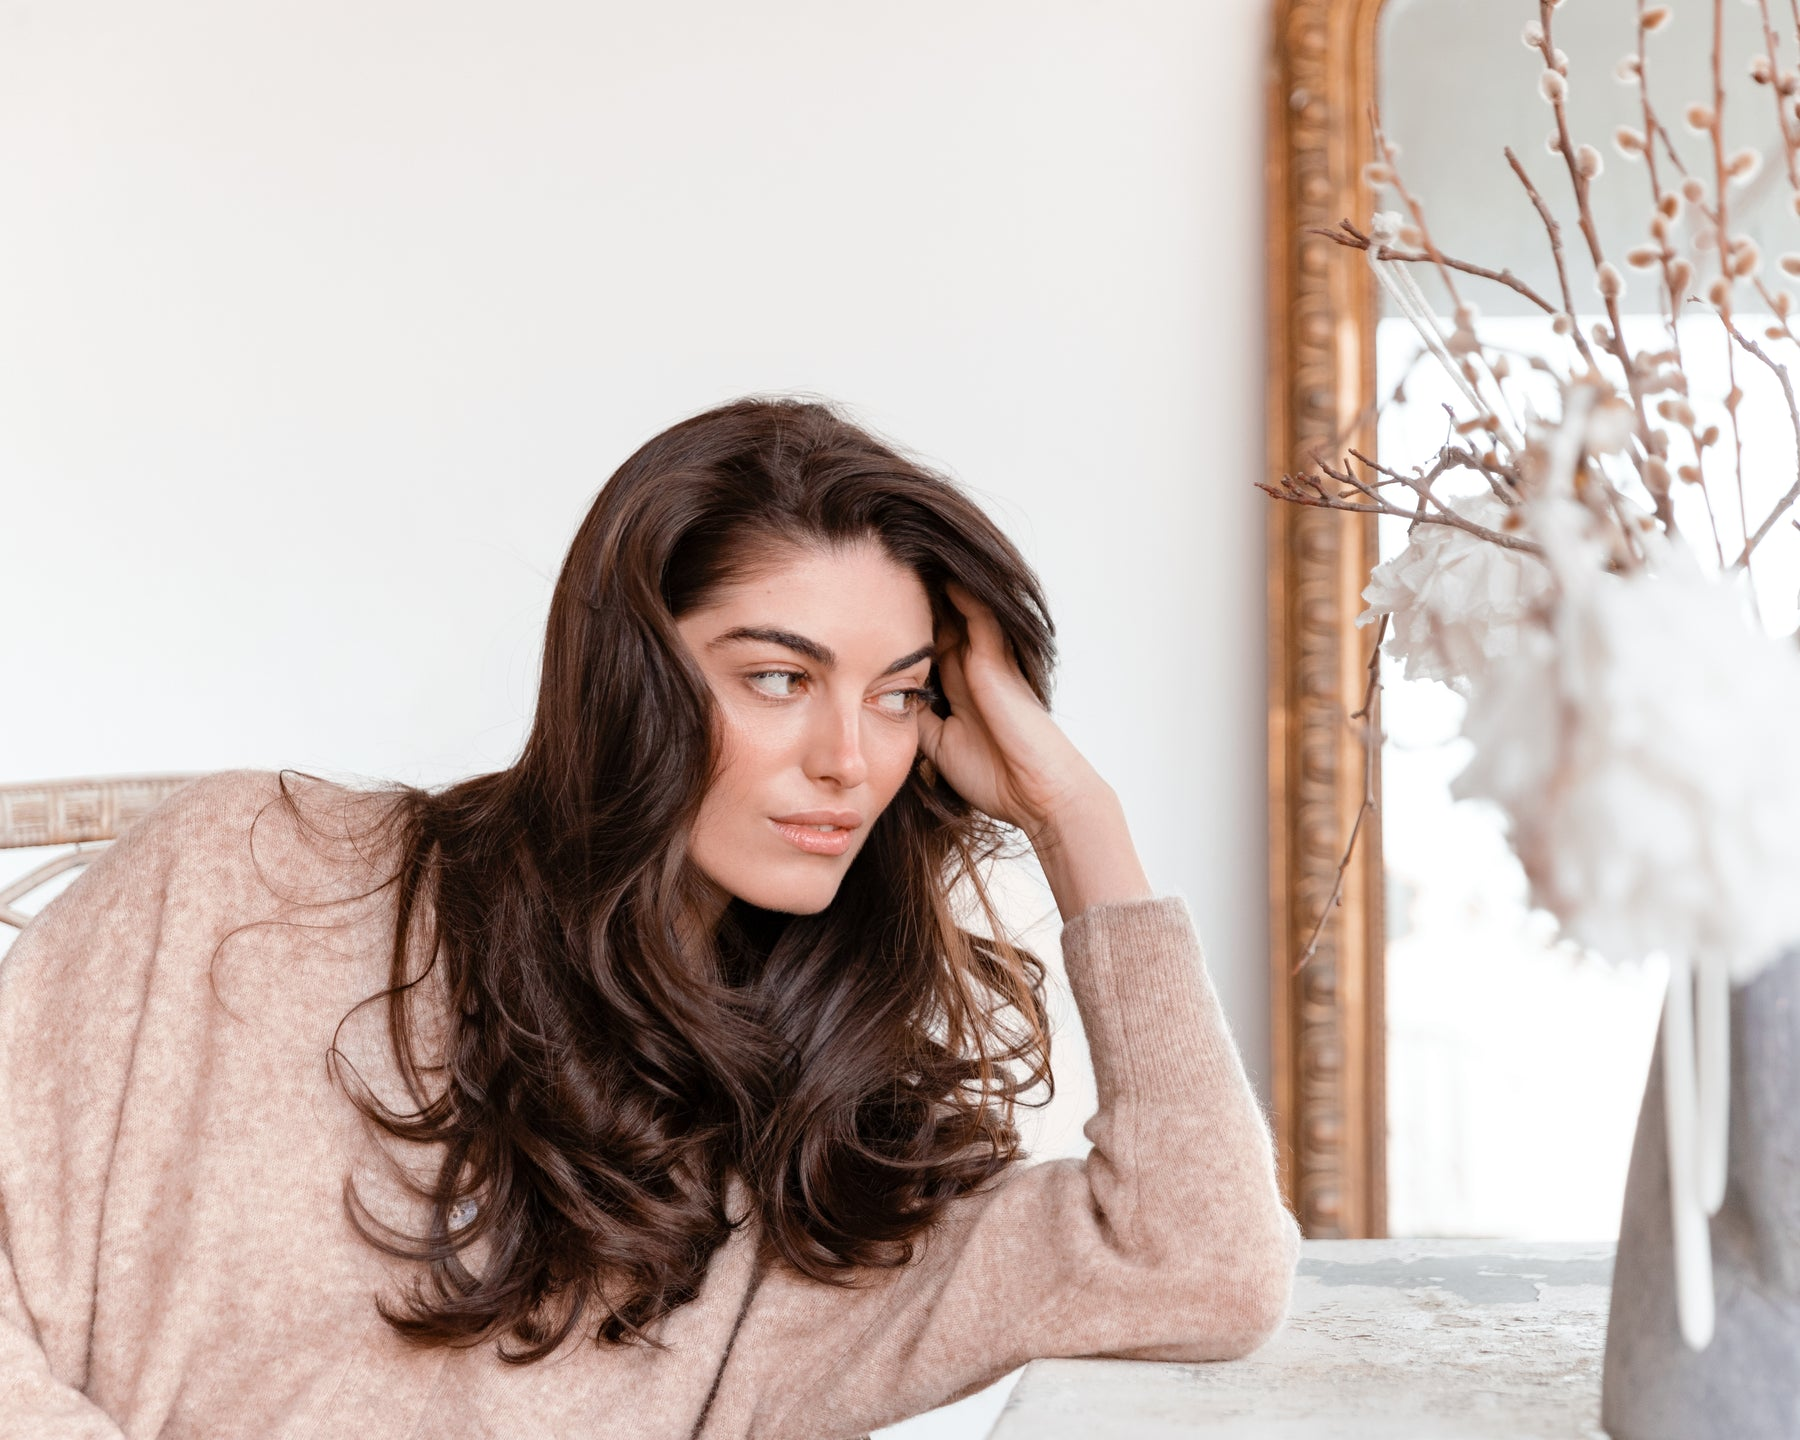 COMBAT THE COLD WEATHER WITH THESE 5 HAIR CARE TIPS!